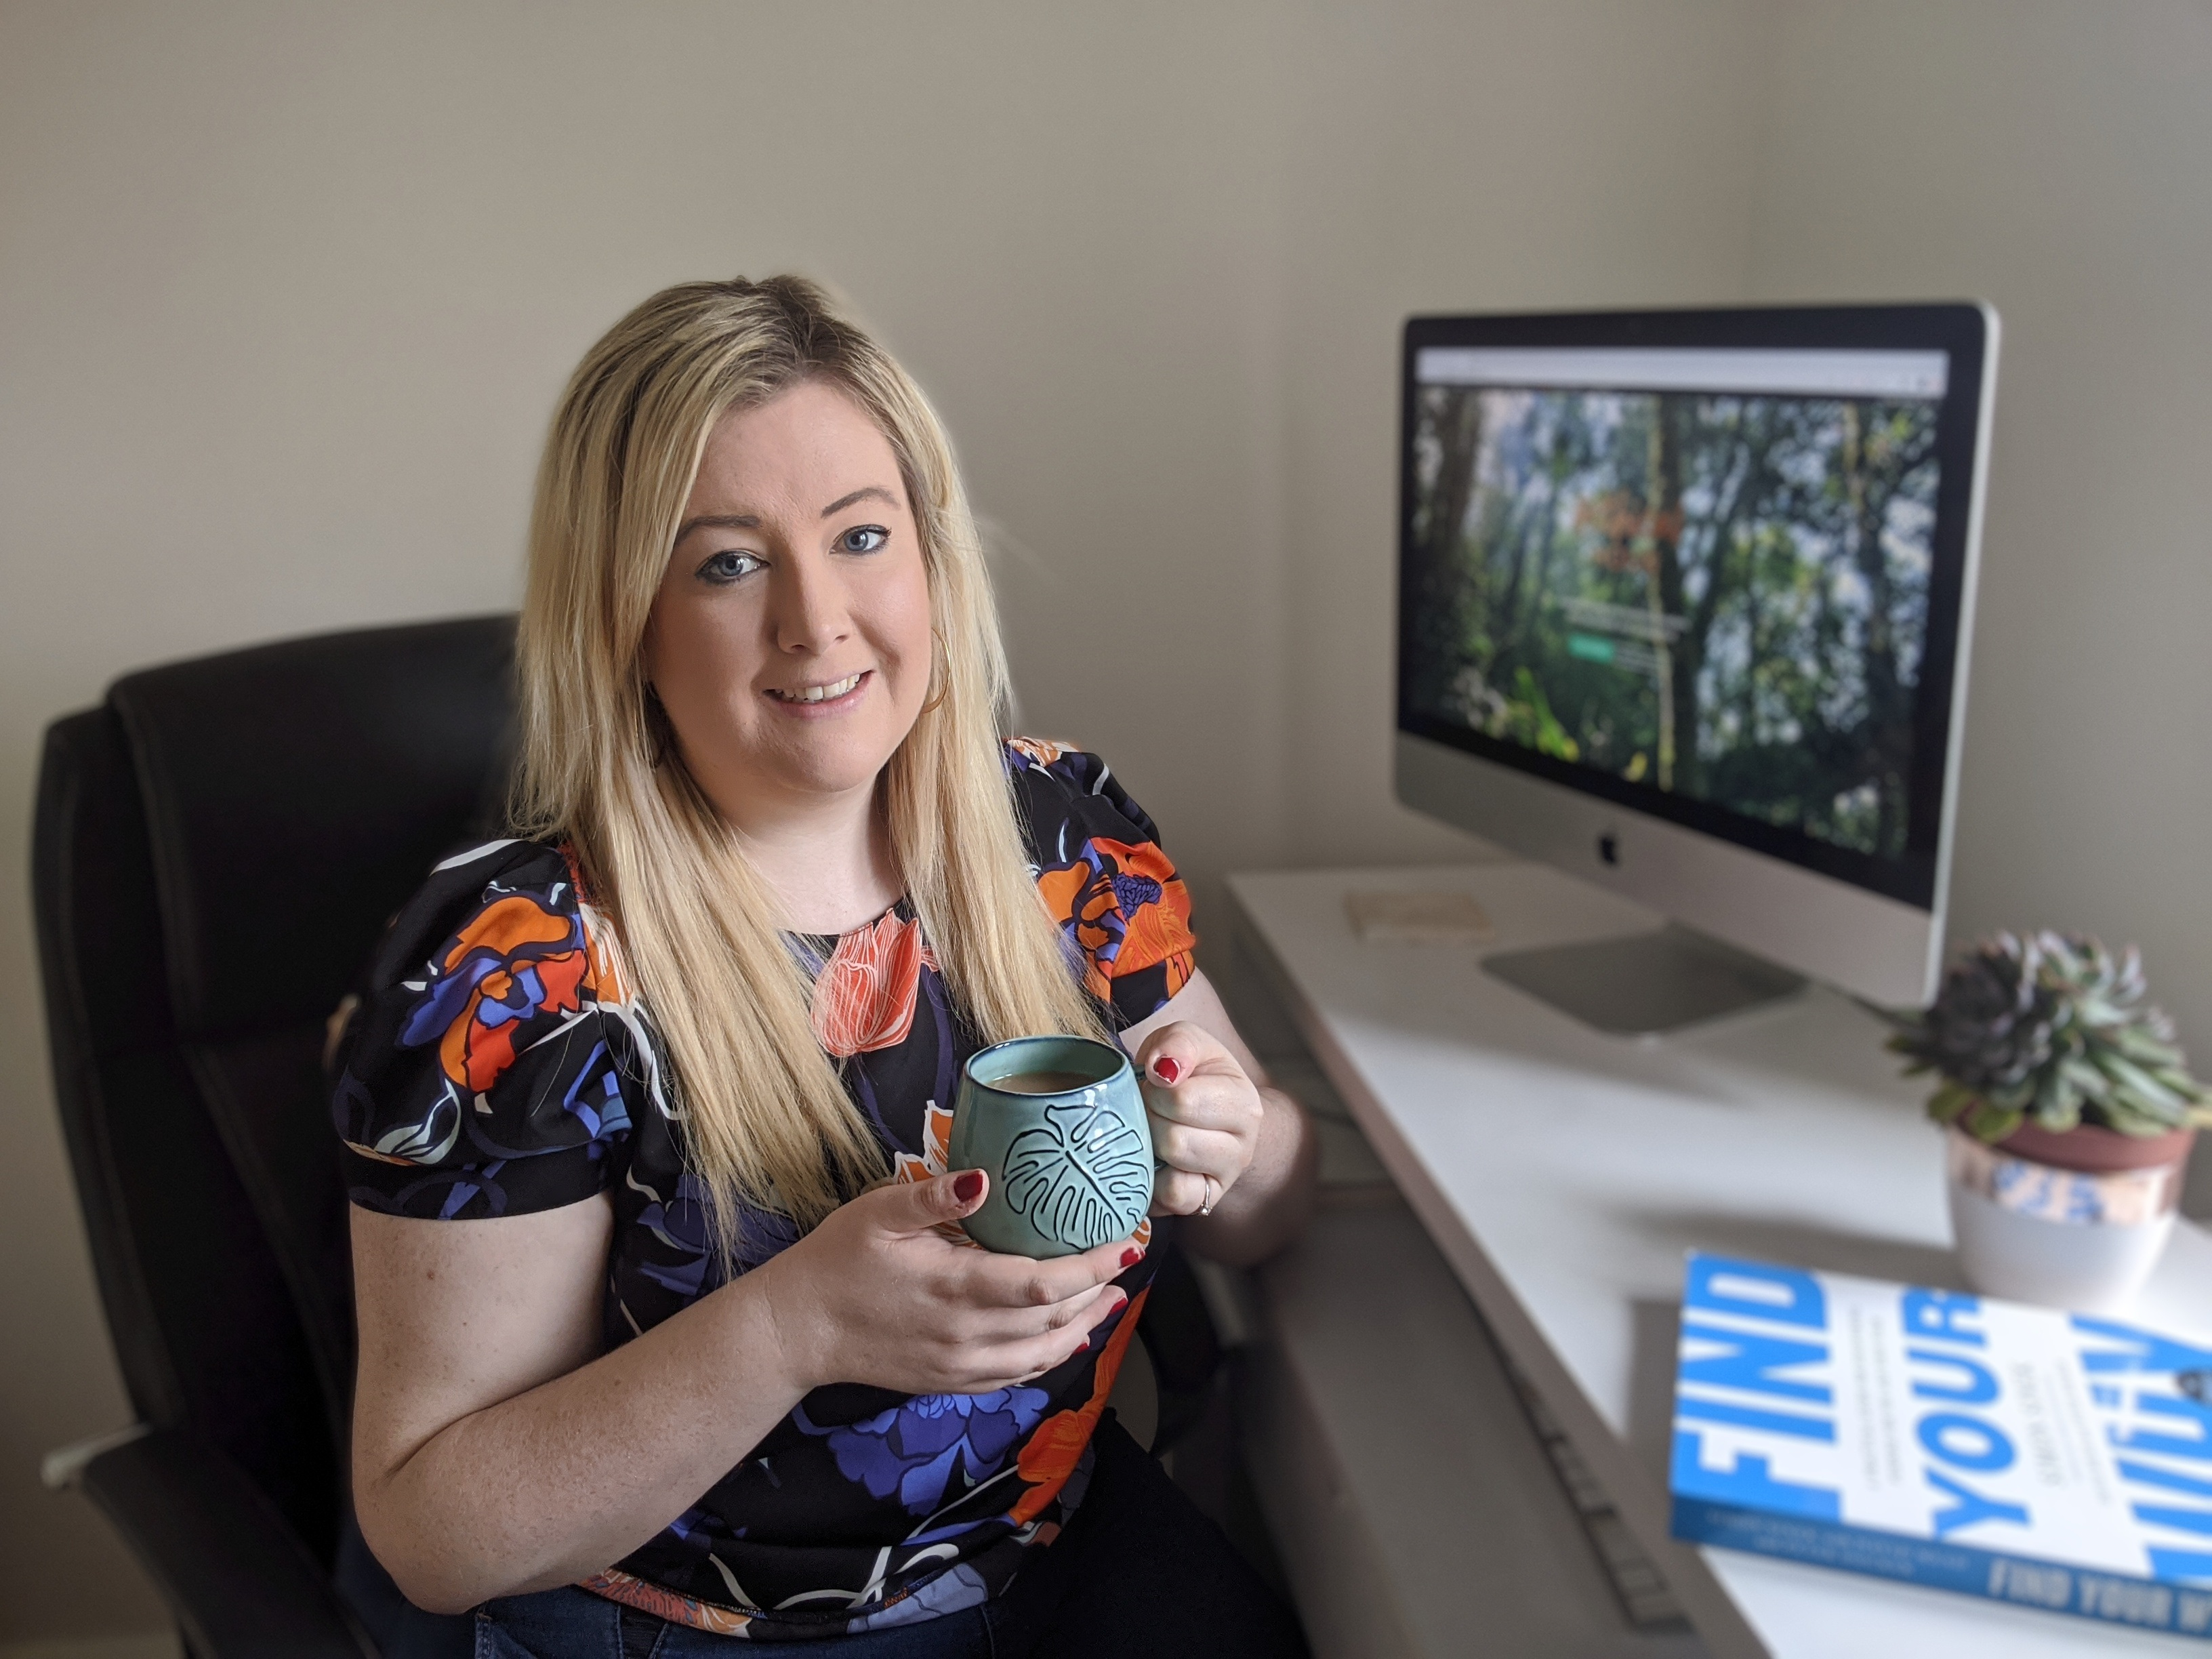 Sian Conway Ethical Hour founder. Credit EthicalHour